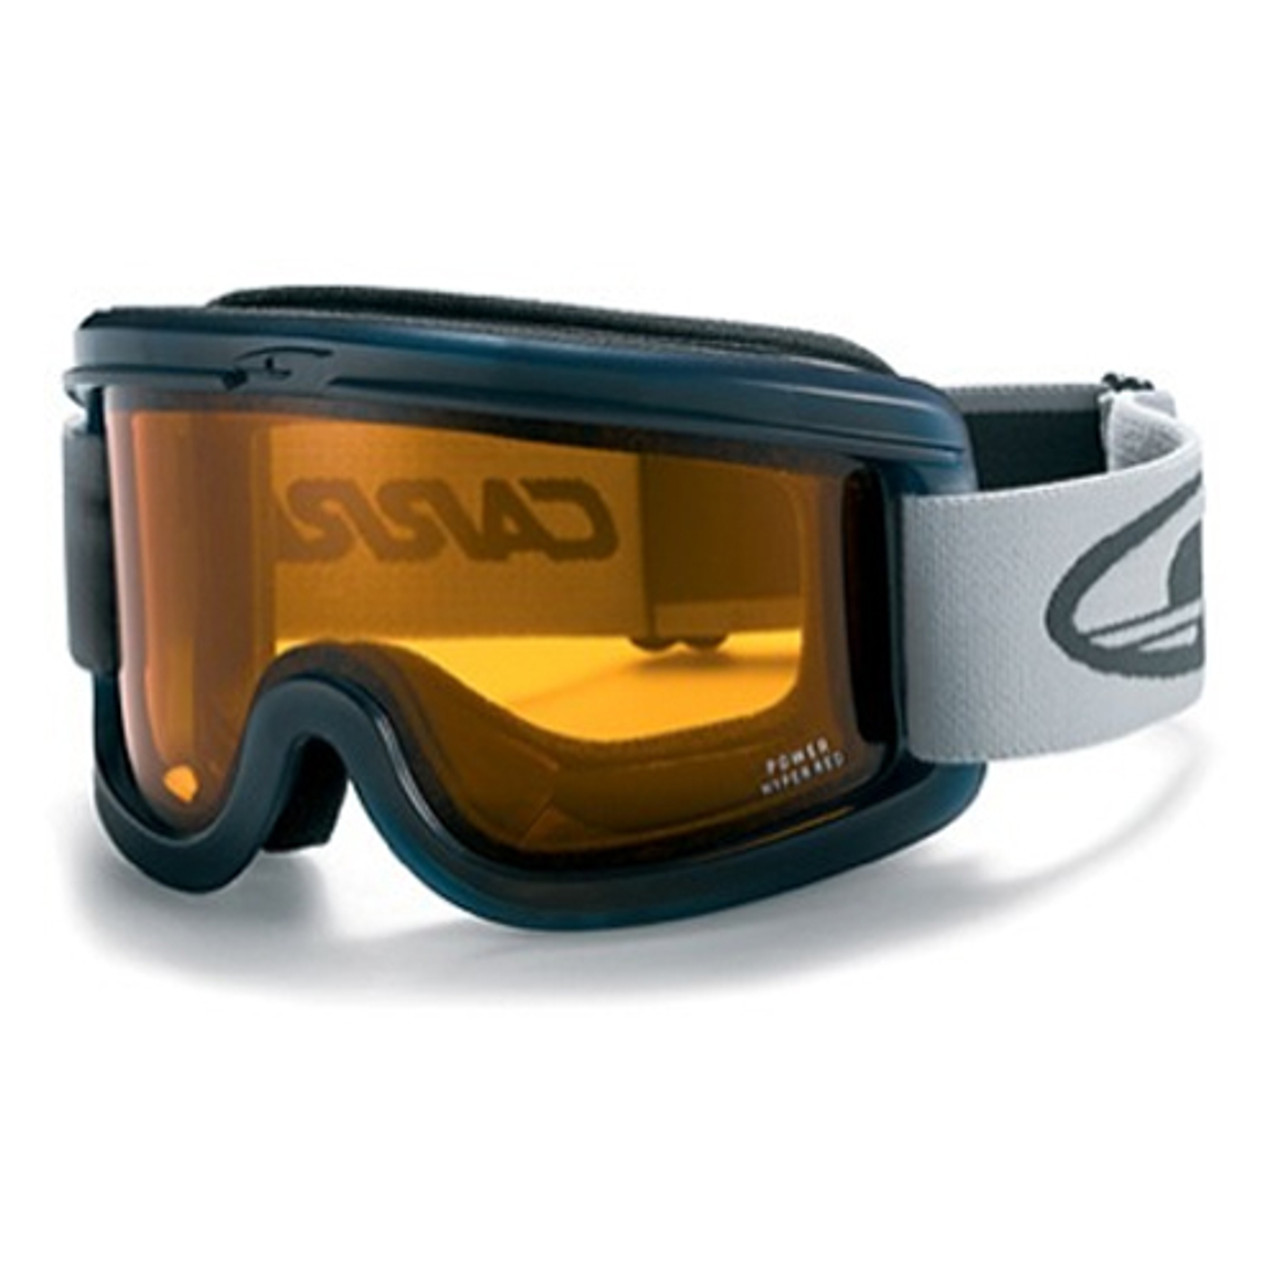 Lens for the Carrera Power Ski Goggles